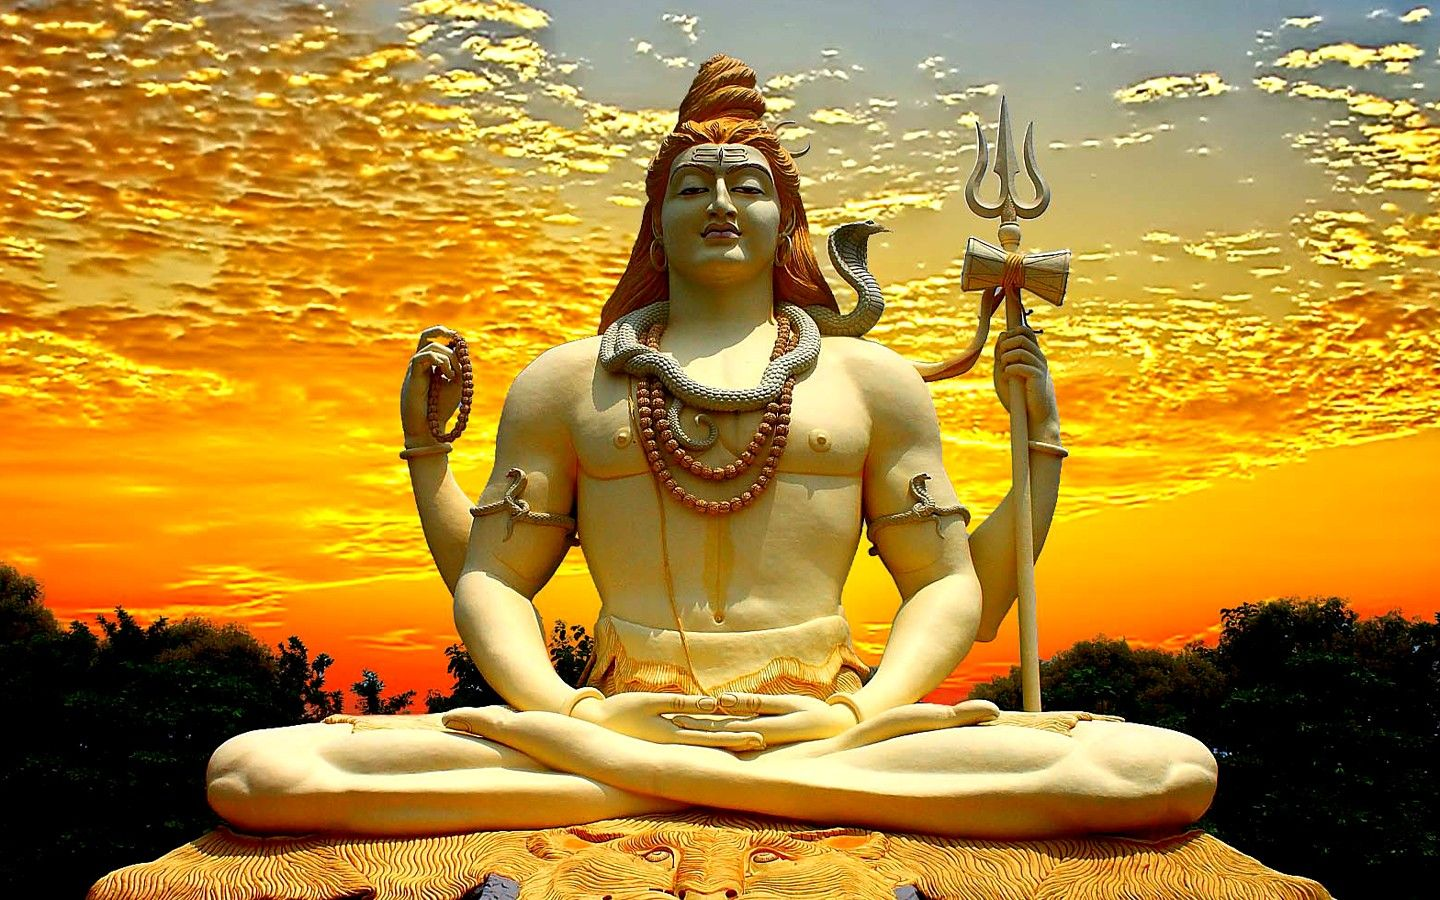 Shiva Wallpaper In Hd: Lord Shiva Images, Lord Shiva Photos & HD Wallpapers Free